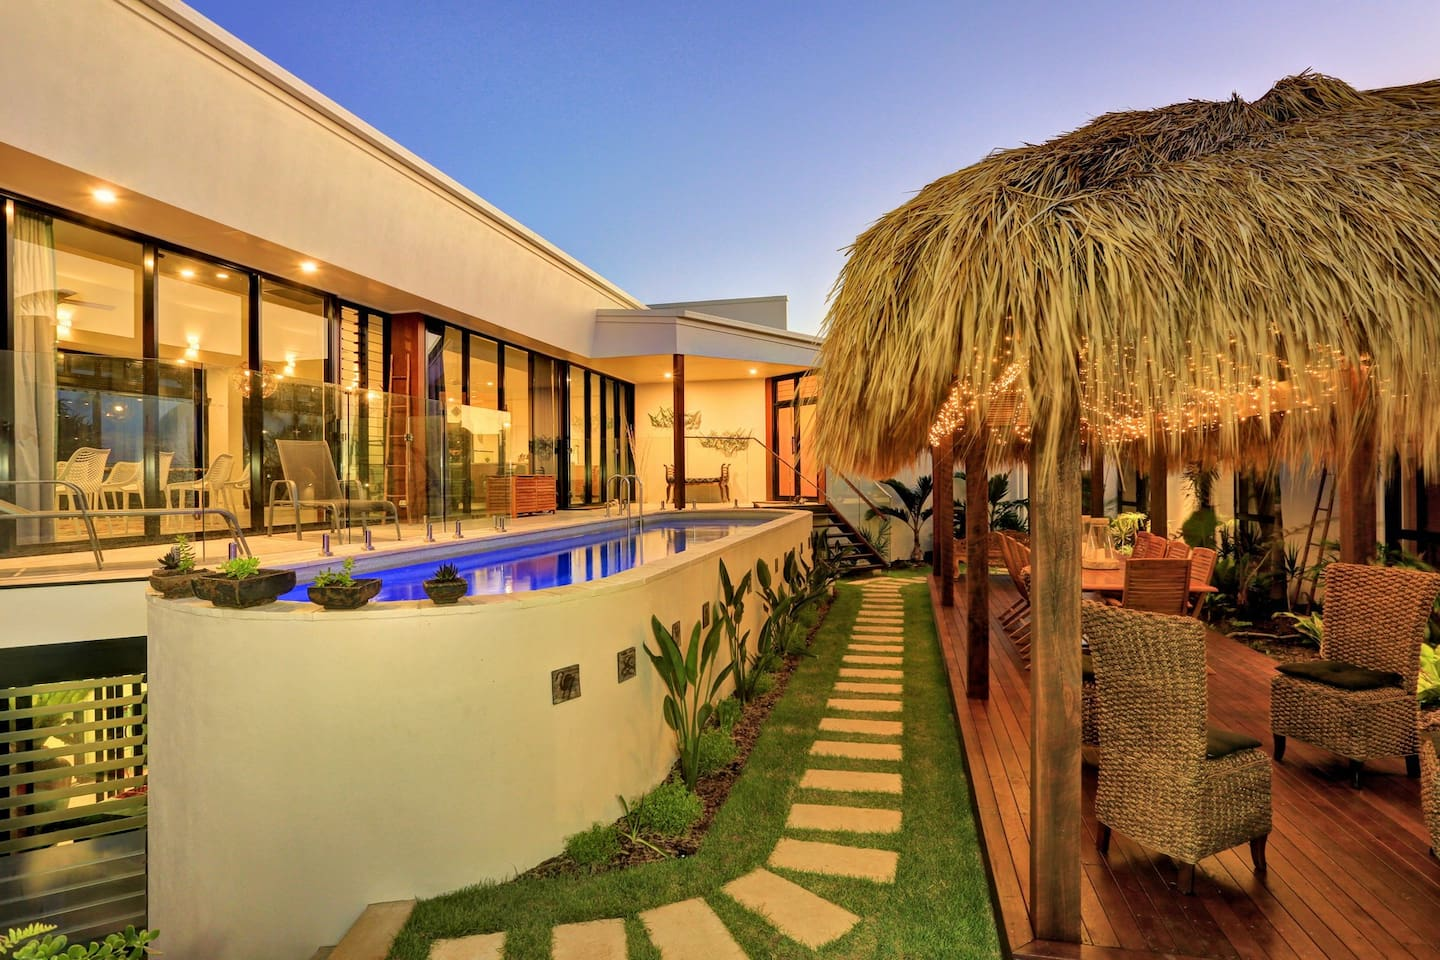 The proximity of the upstairs open plan area, the pool lounge, the Magnesium pool itself, the ZEN gardens and the Bali - it all flows quite effortlessly into he villas where friends acne stay in addition to the main residence.